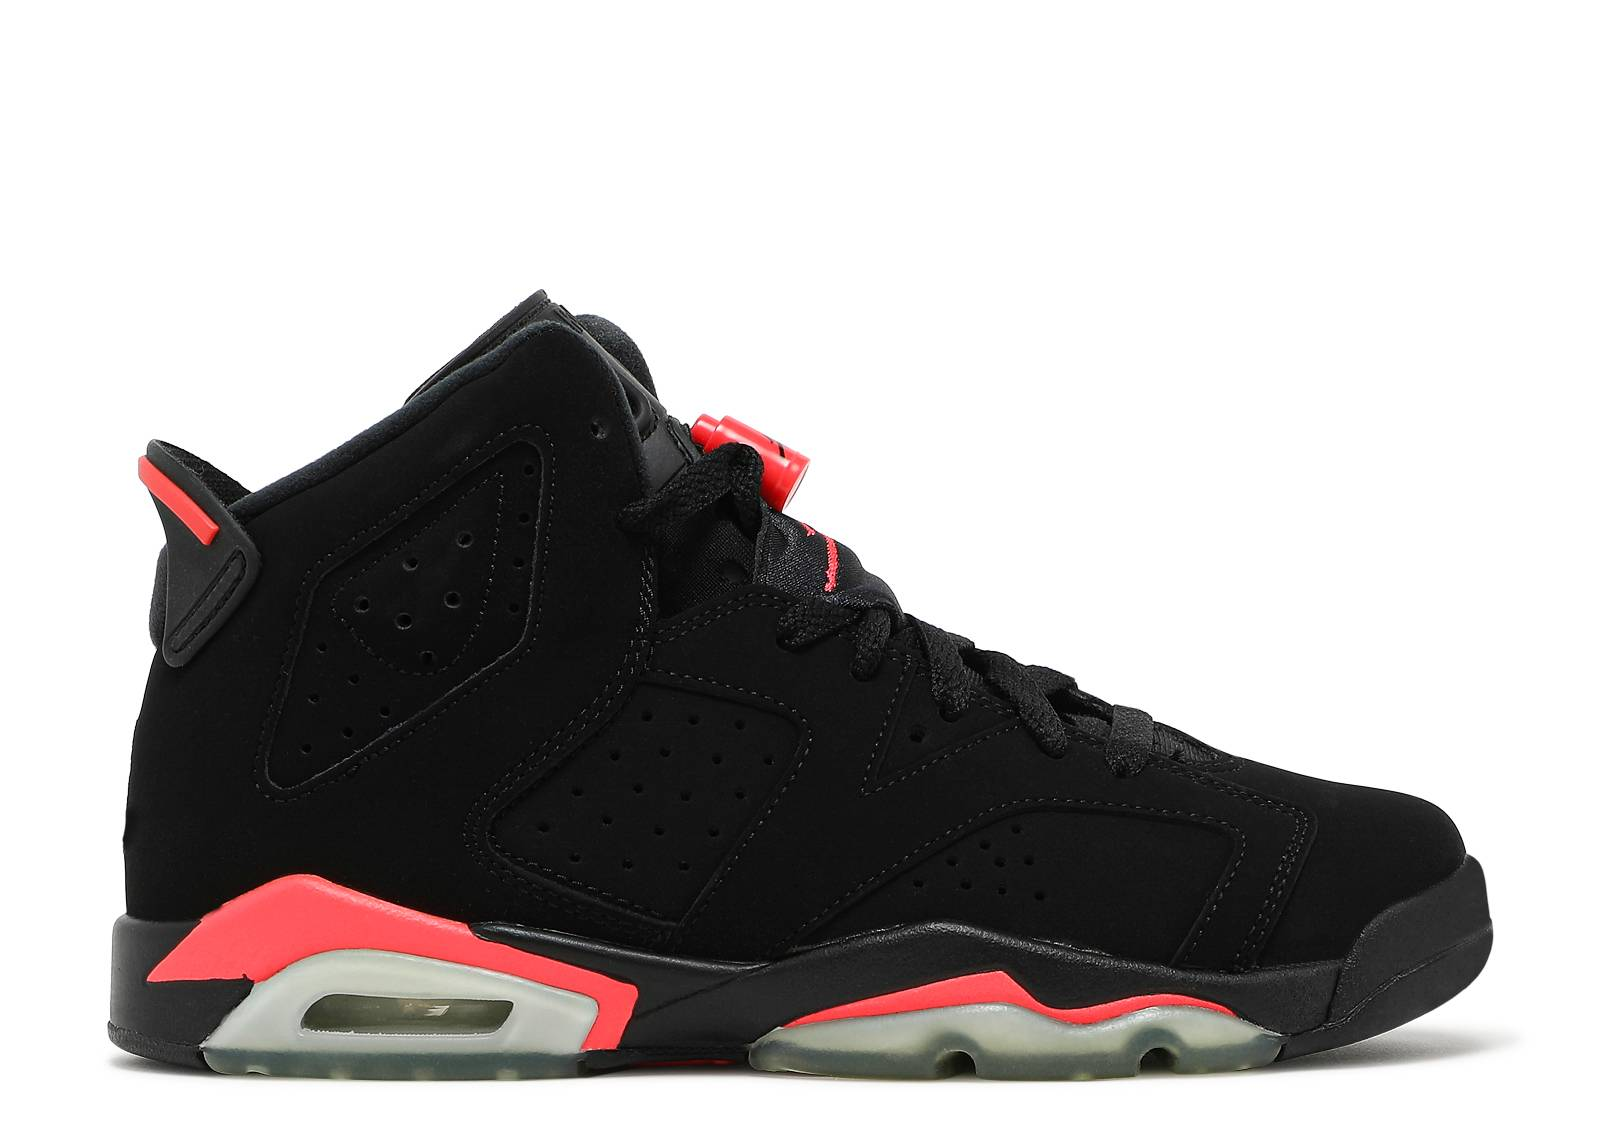 nike air jordan 6 retro bg black infrared 11